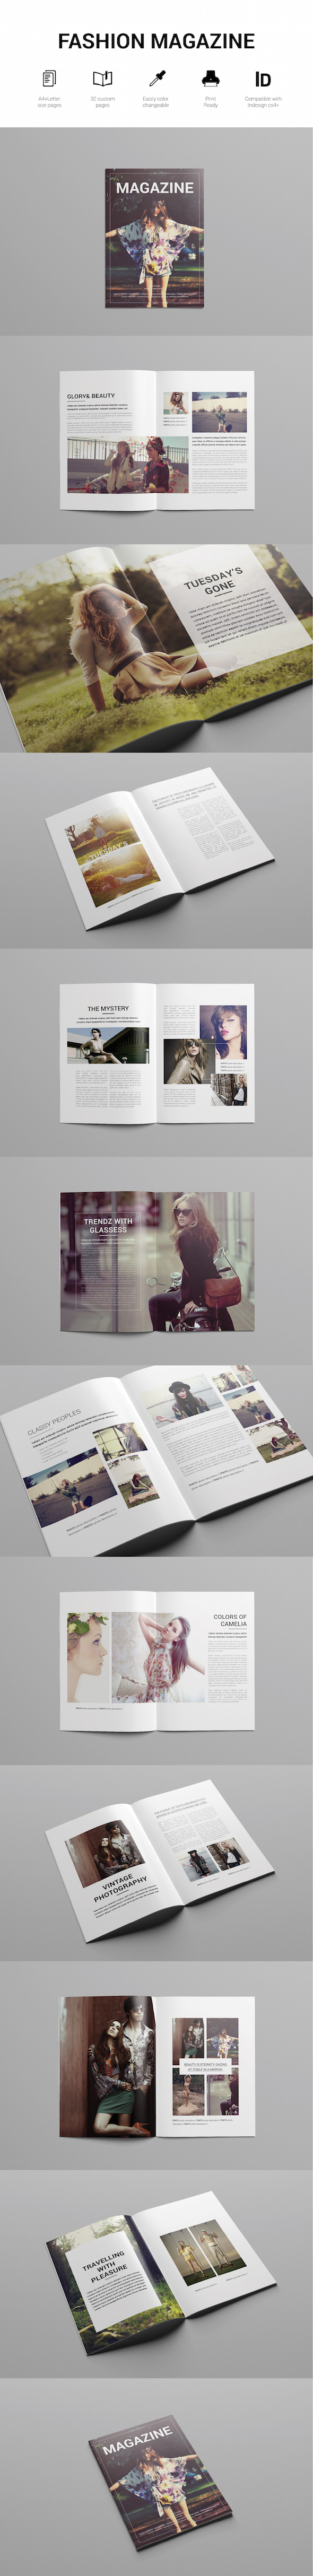 This is an editable magazine template available for download at ...